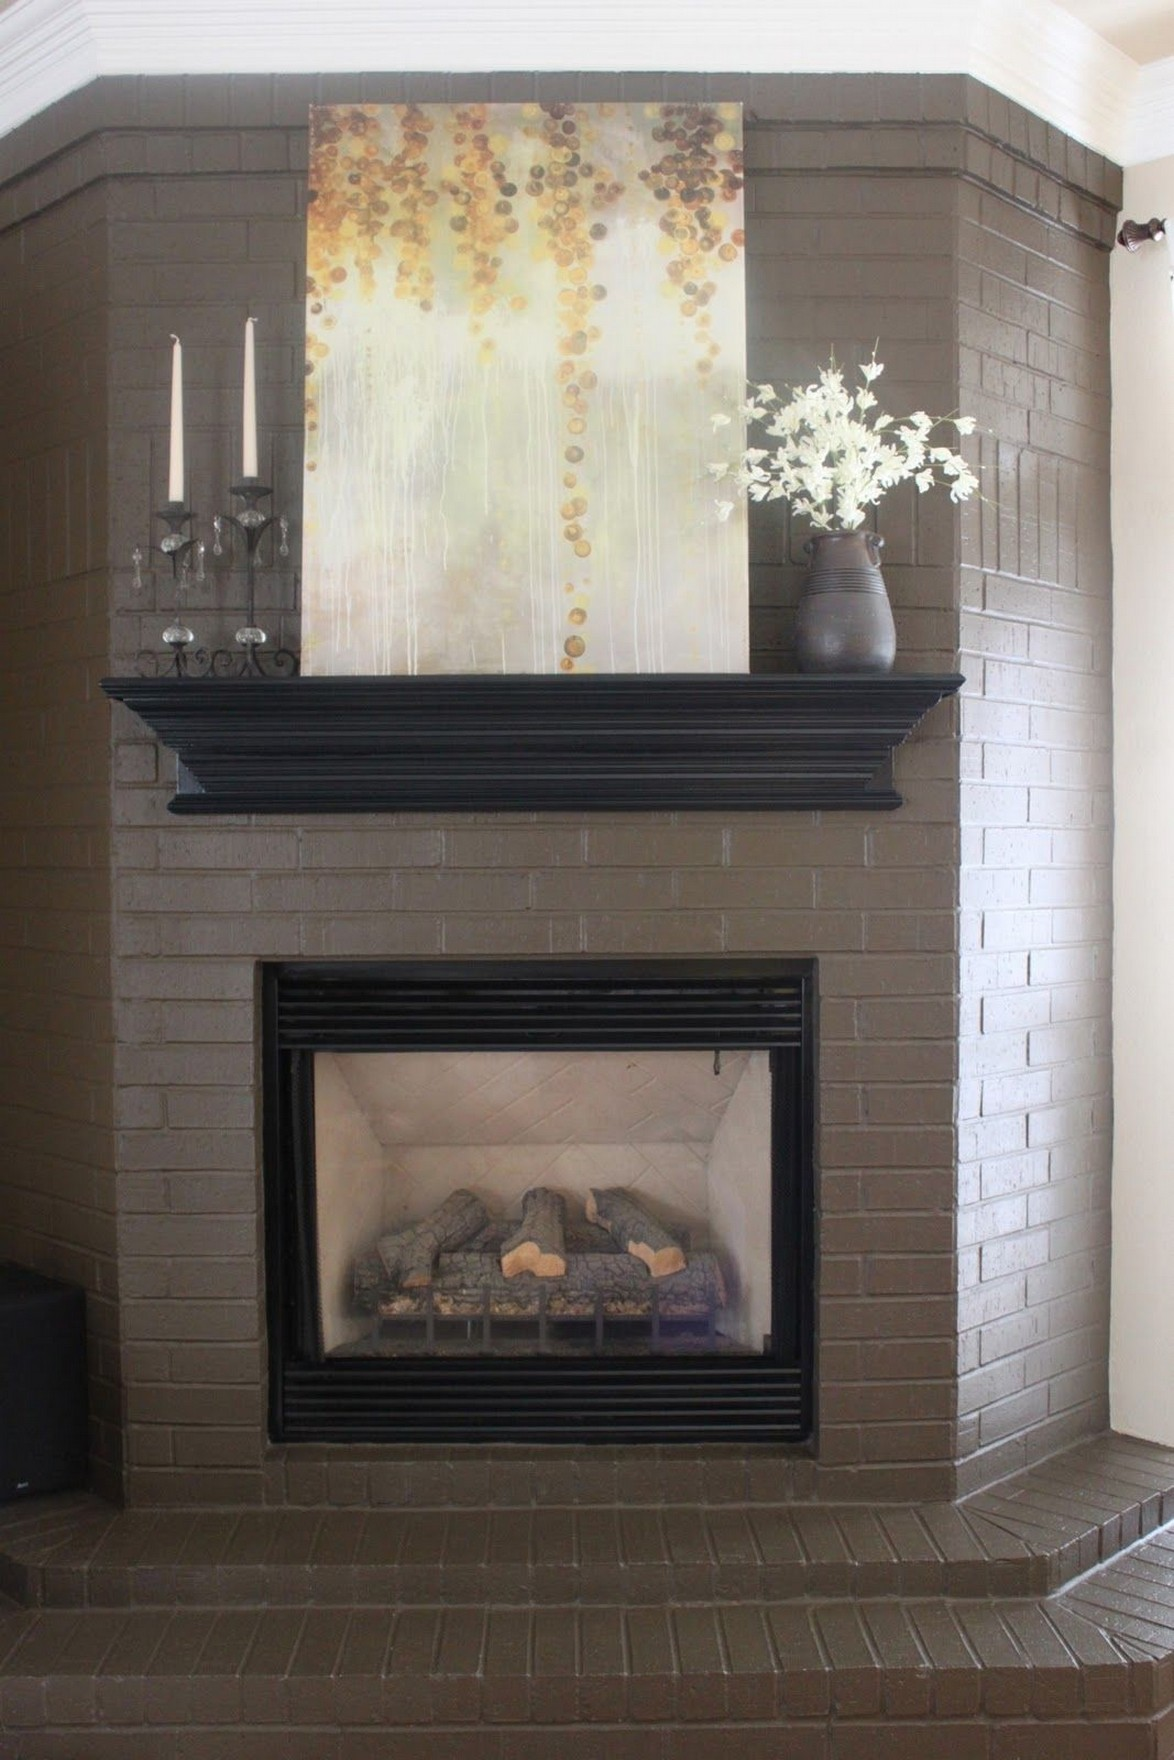 76 Stone Fireplaces The Hearth Is The Heart of The Home 16